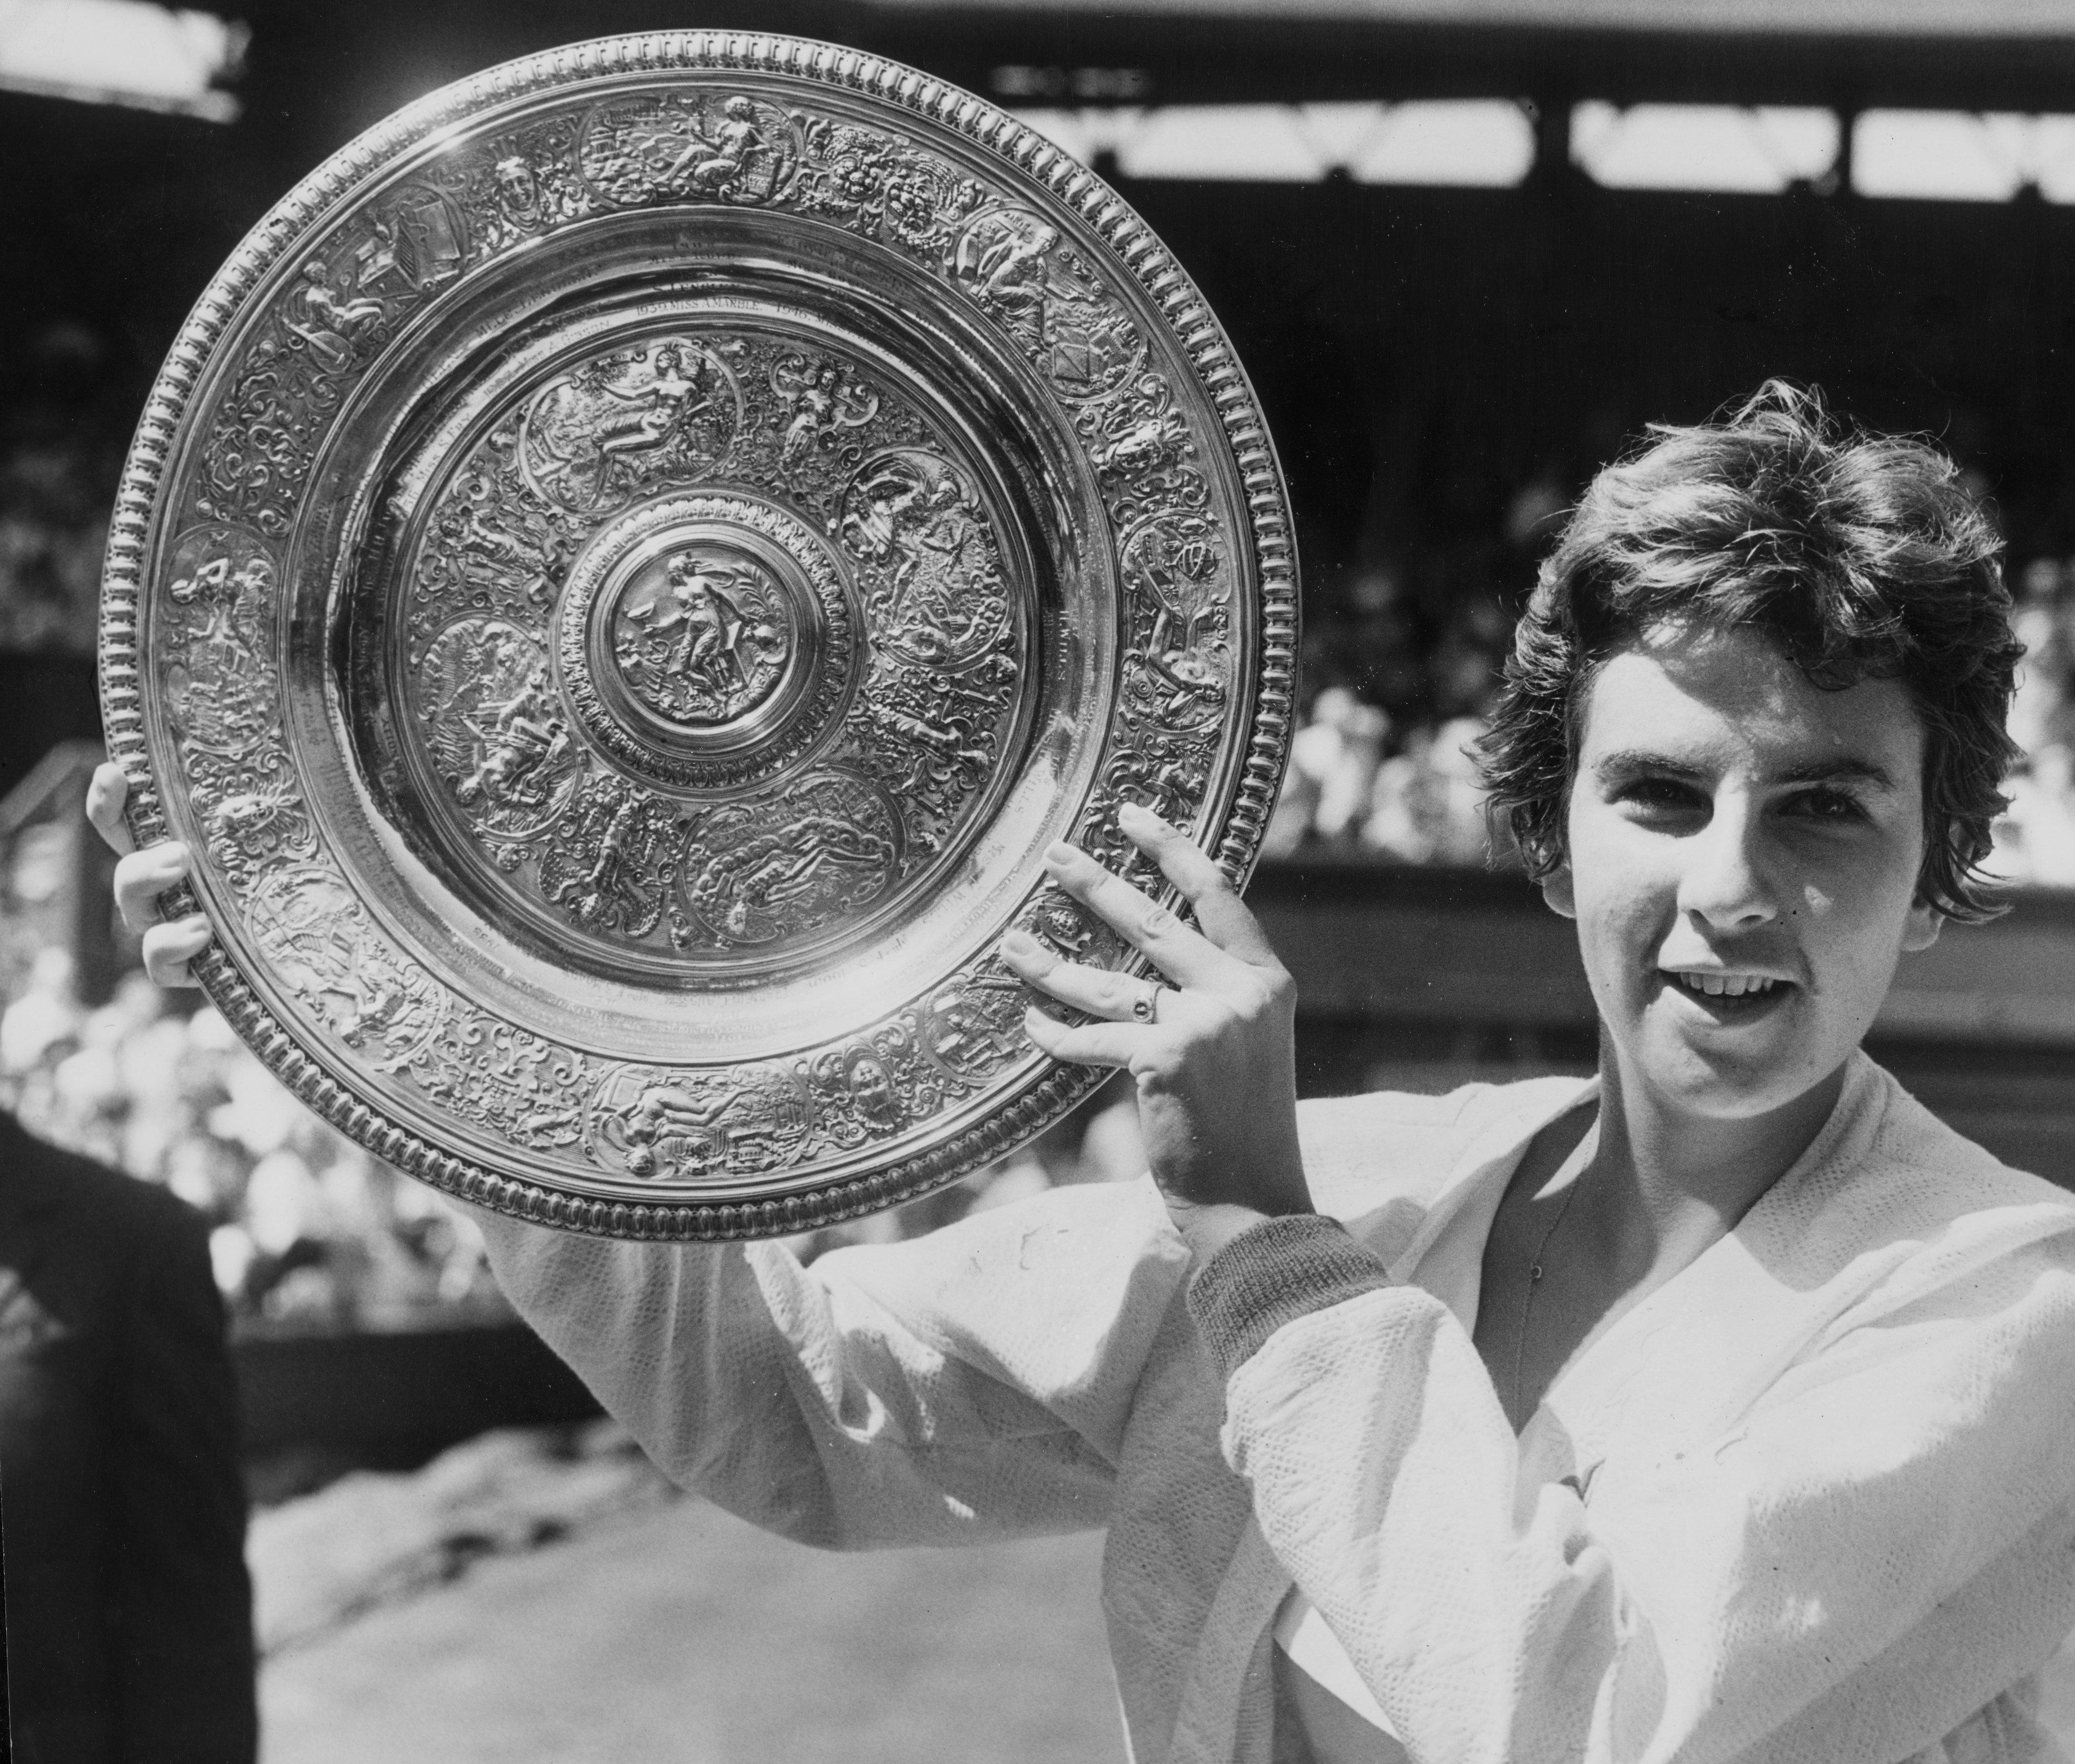 Maria Bueno won the Wimbledon singles titles during her brilliant career